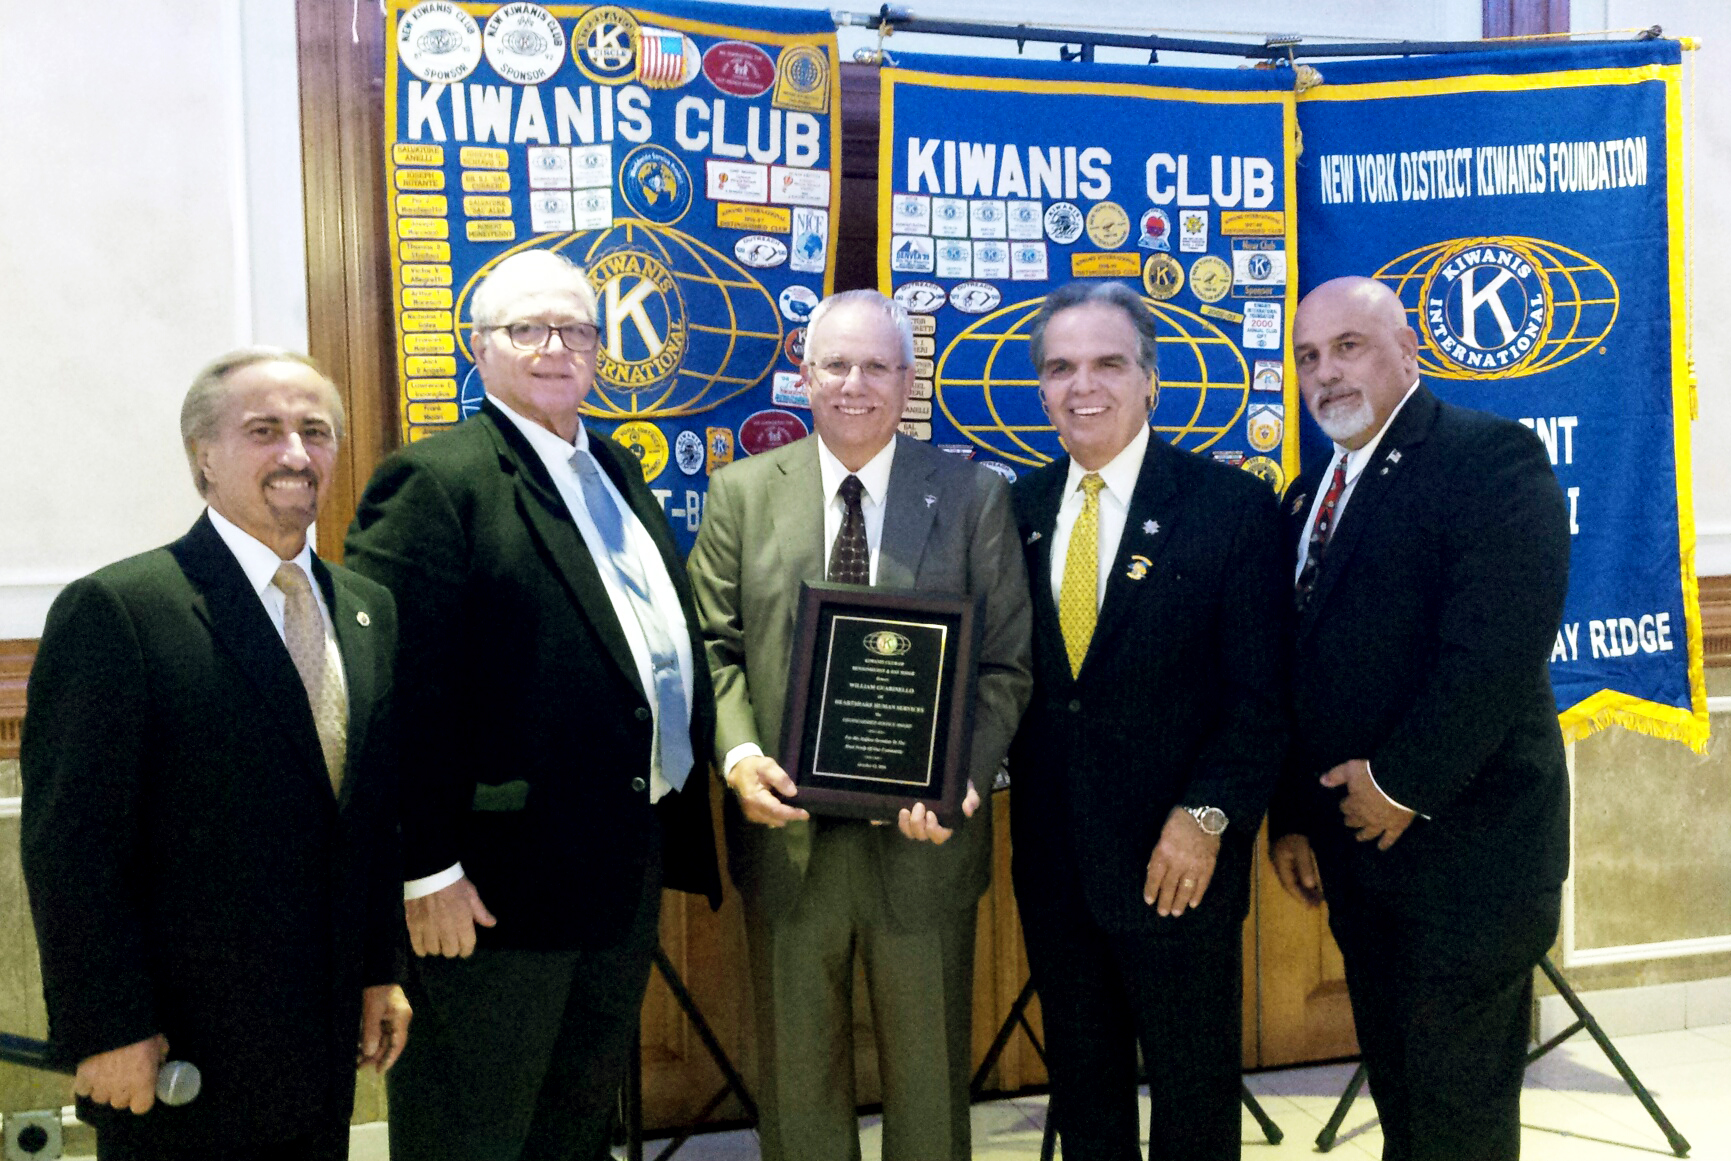 kiwanis-bill-honoree-2016_touched-up